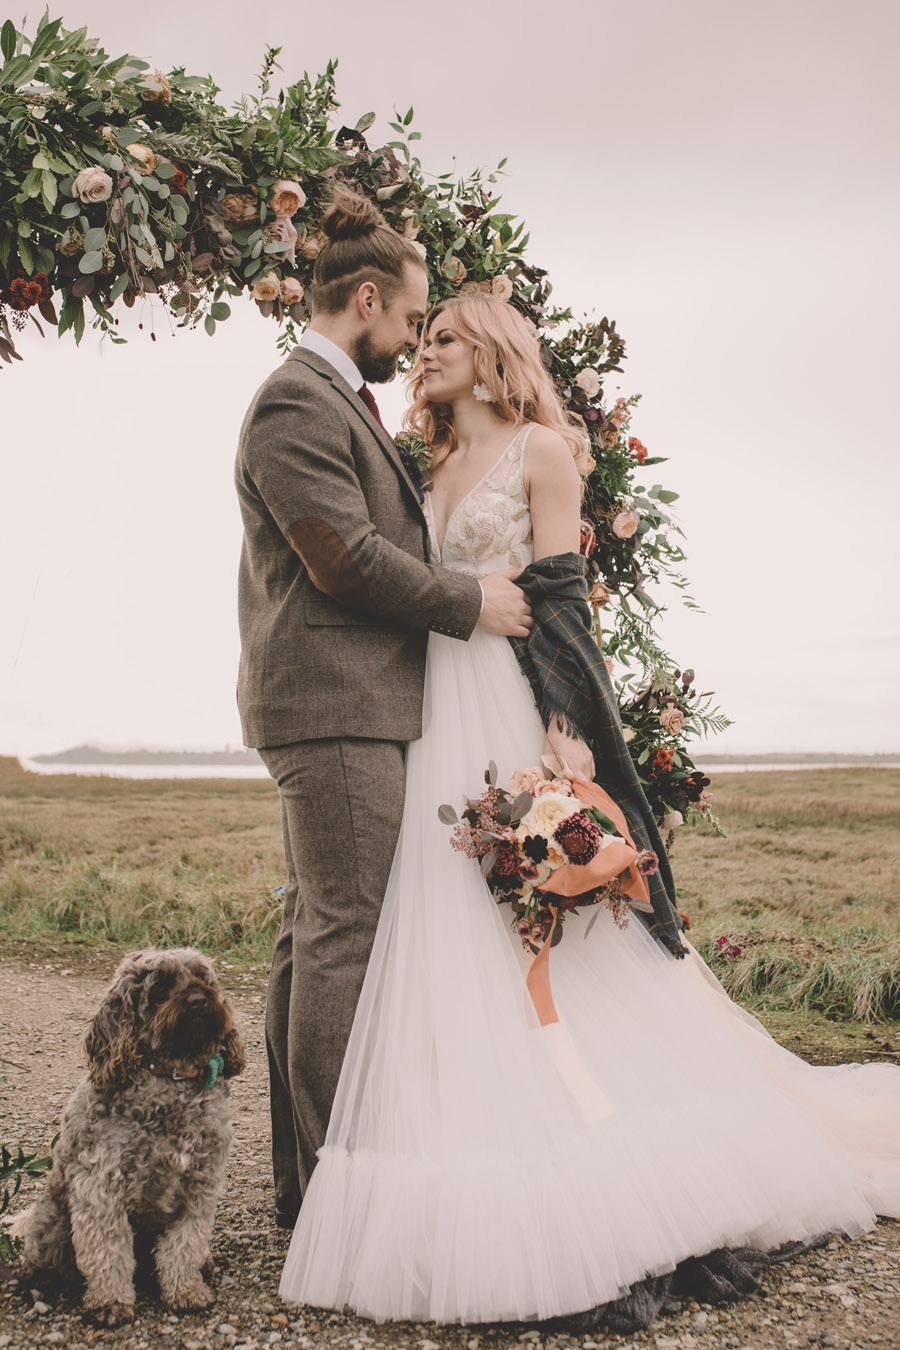 We Found Love! Natural, modern wedding inspiration from The Ferry House with images by Kerry Ann Duffy (38)